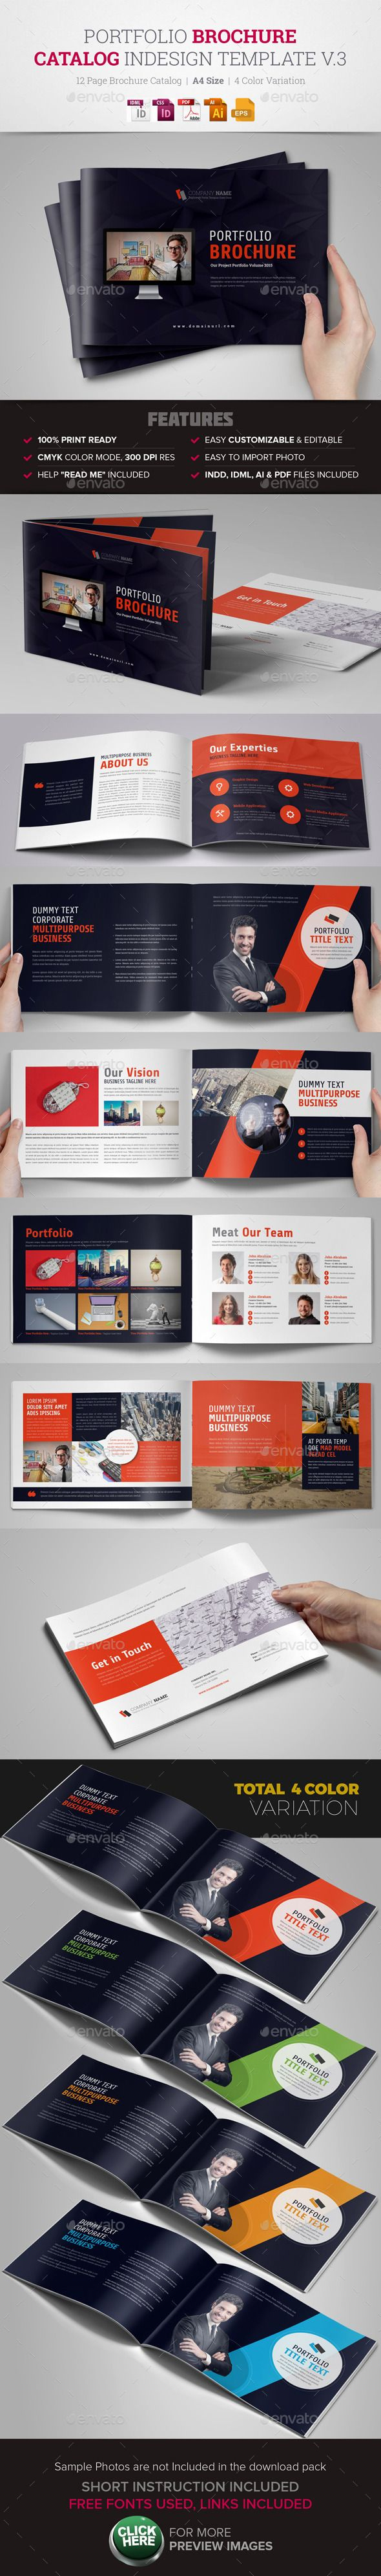 Portfolio Brochure InDesign Template v3